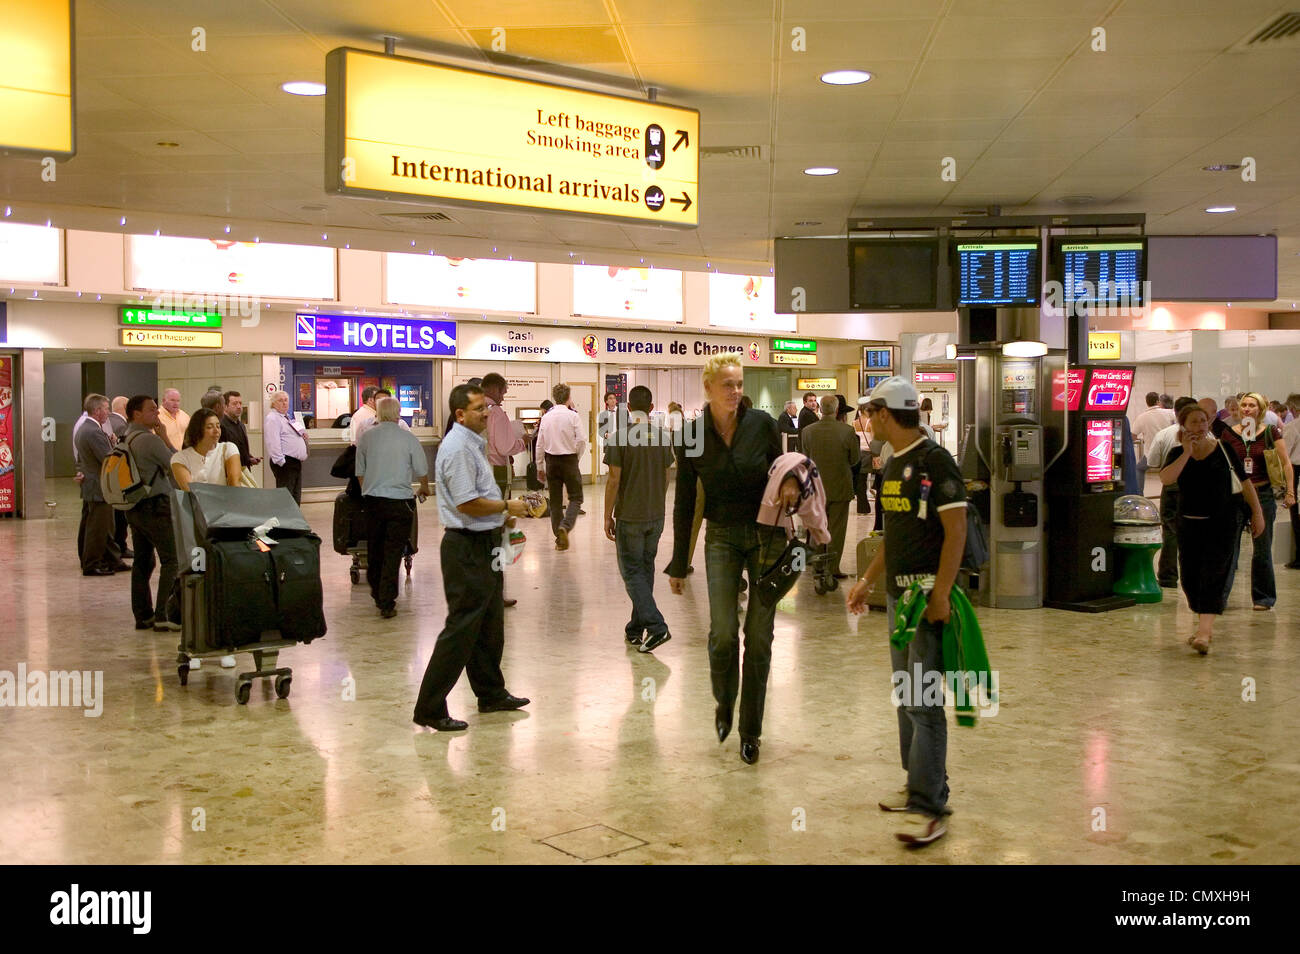 International arrivals lounge at heathrow airport - Stock Image